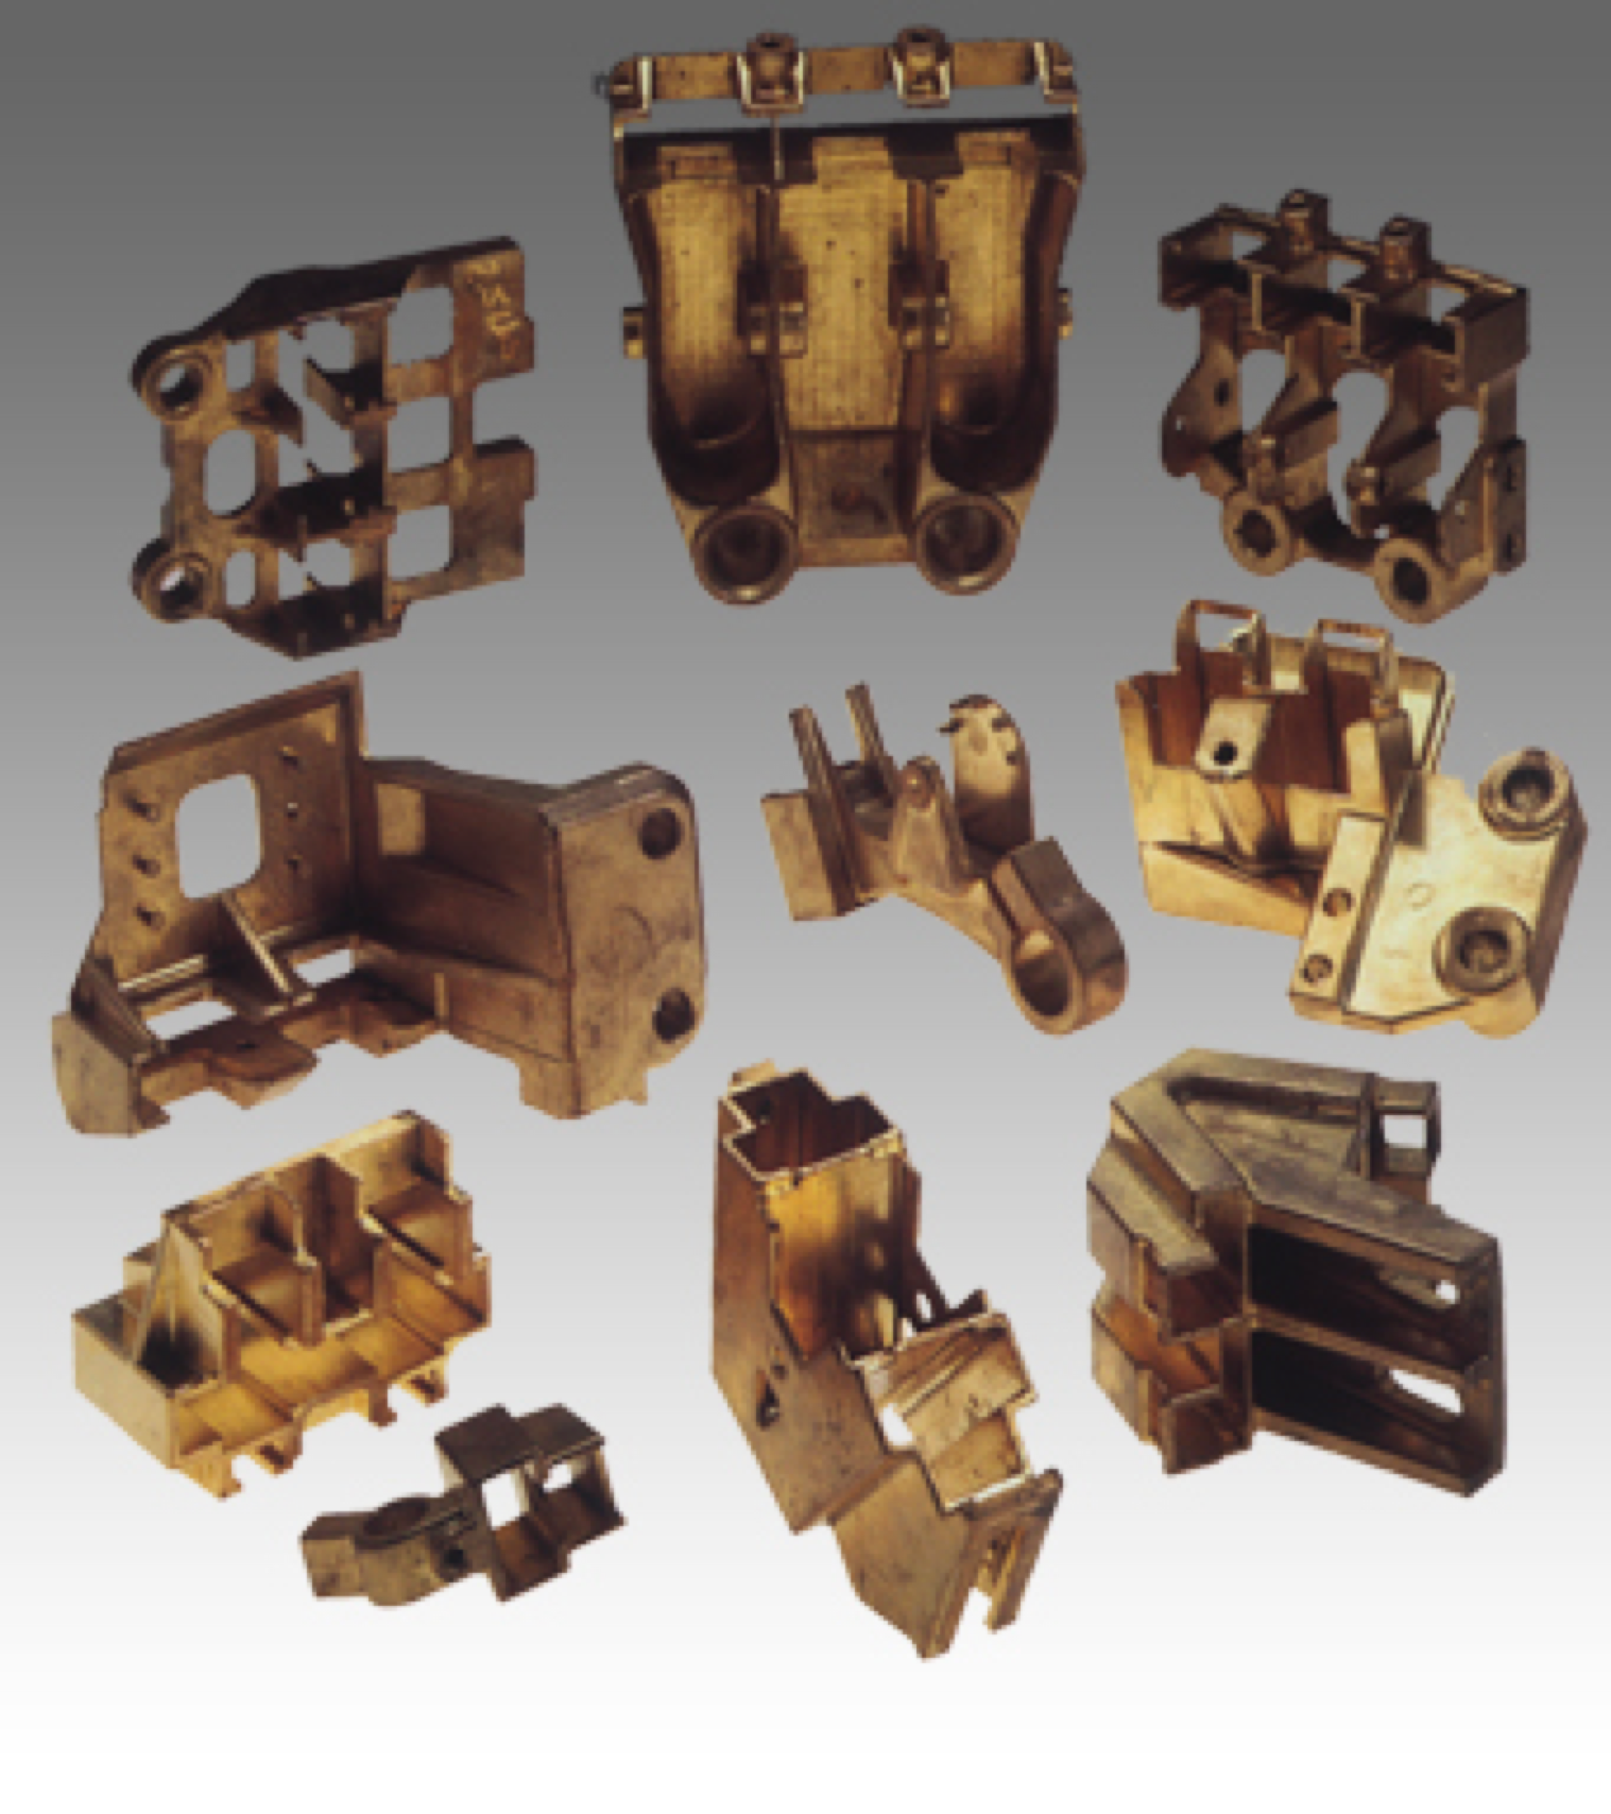 metal works from metalcasting machinery